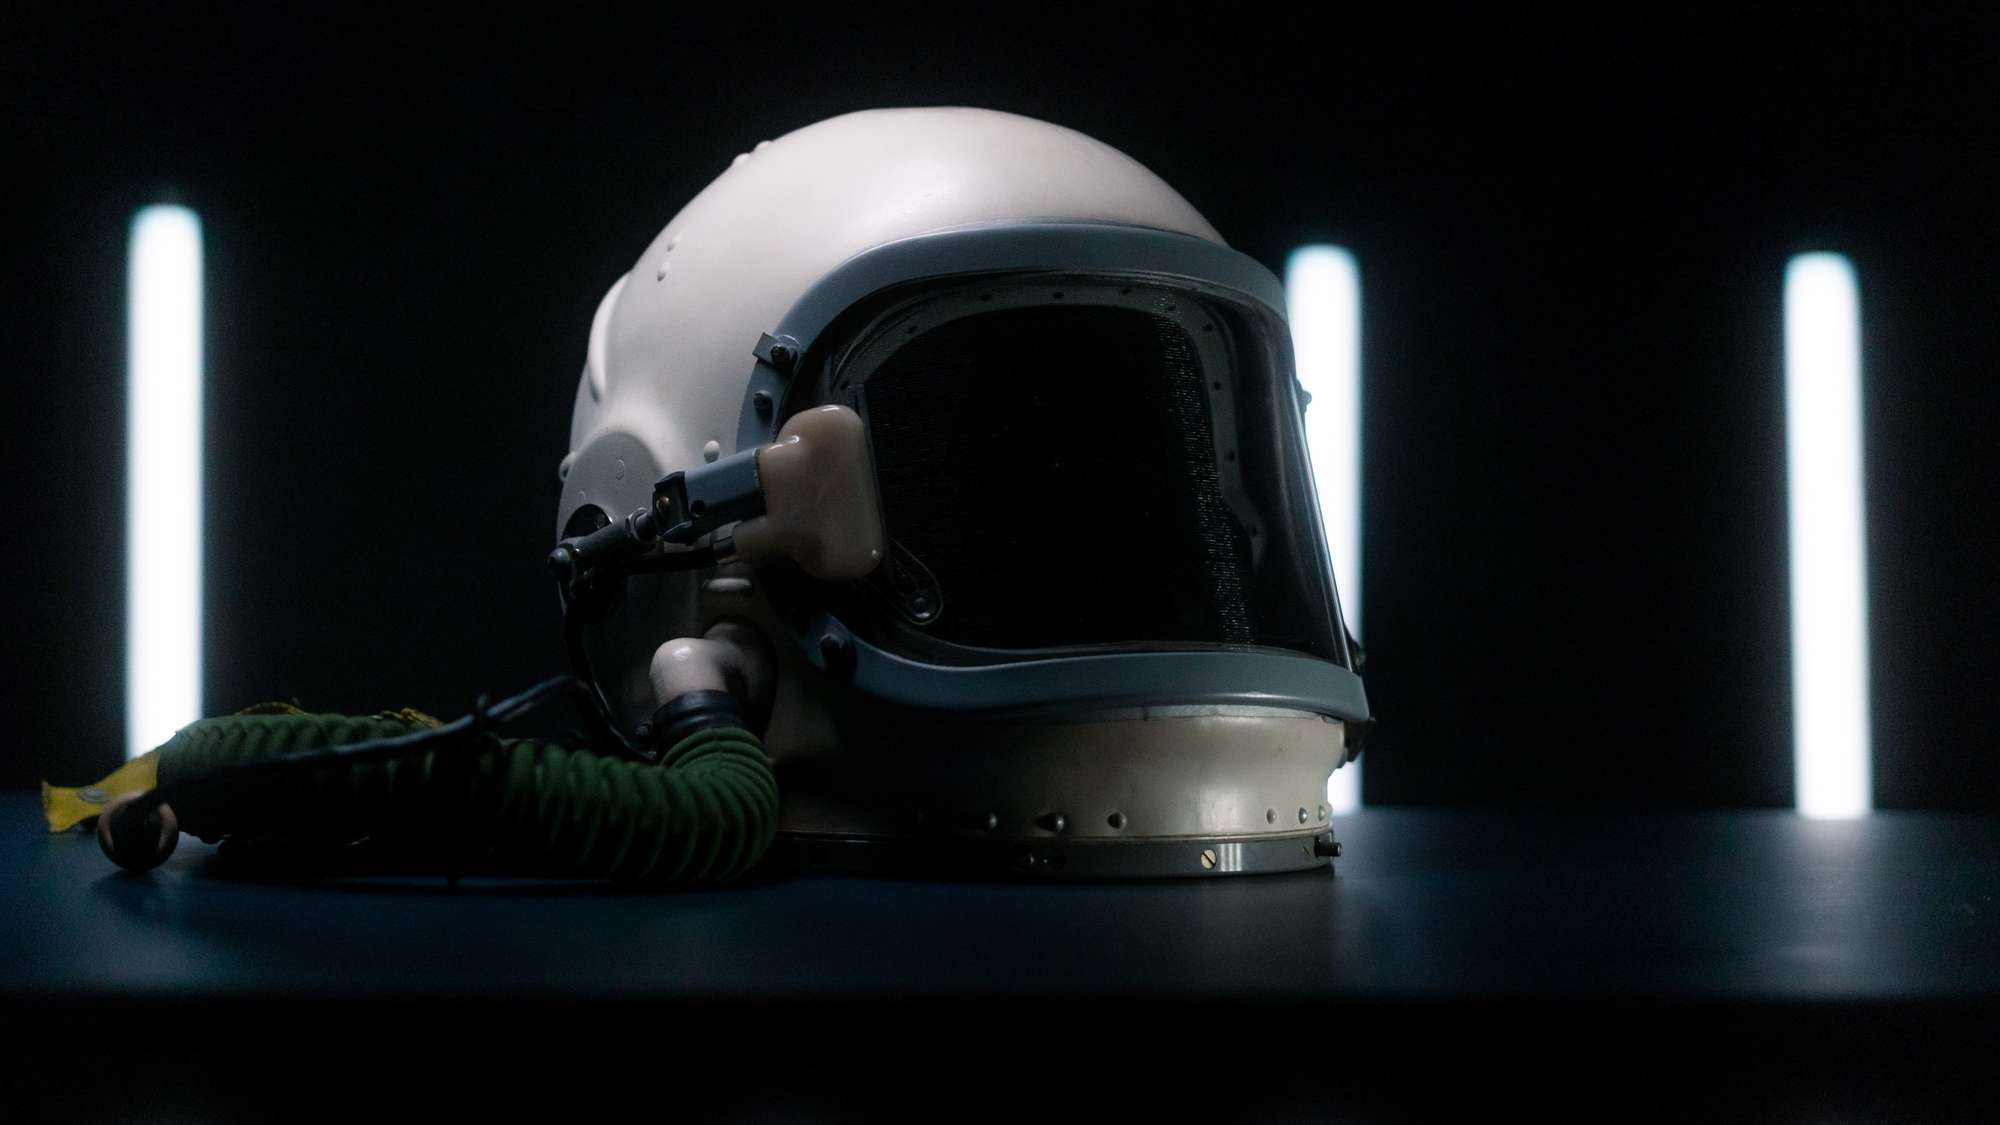 Space helmet with white lights in the background